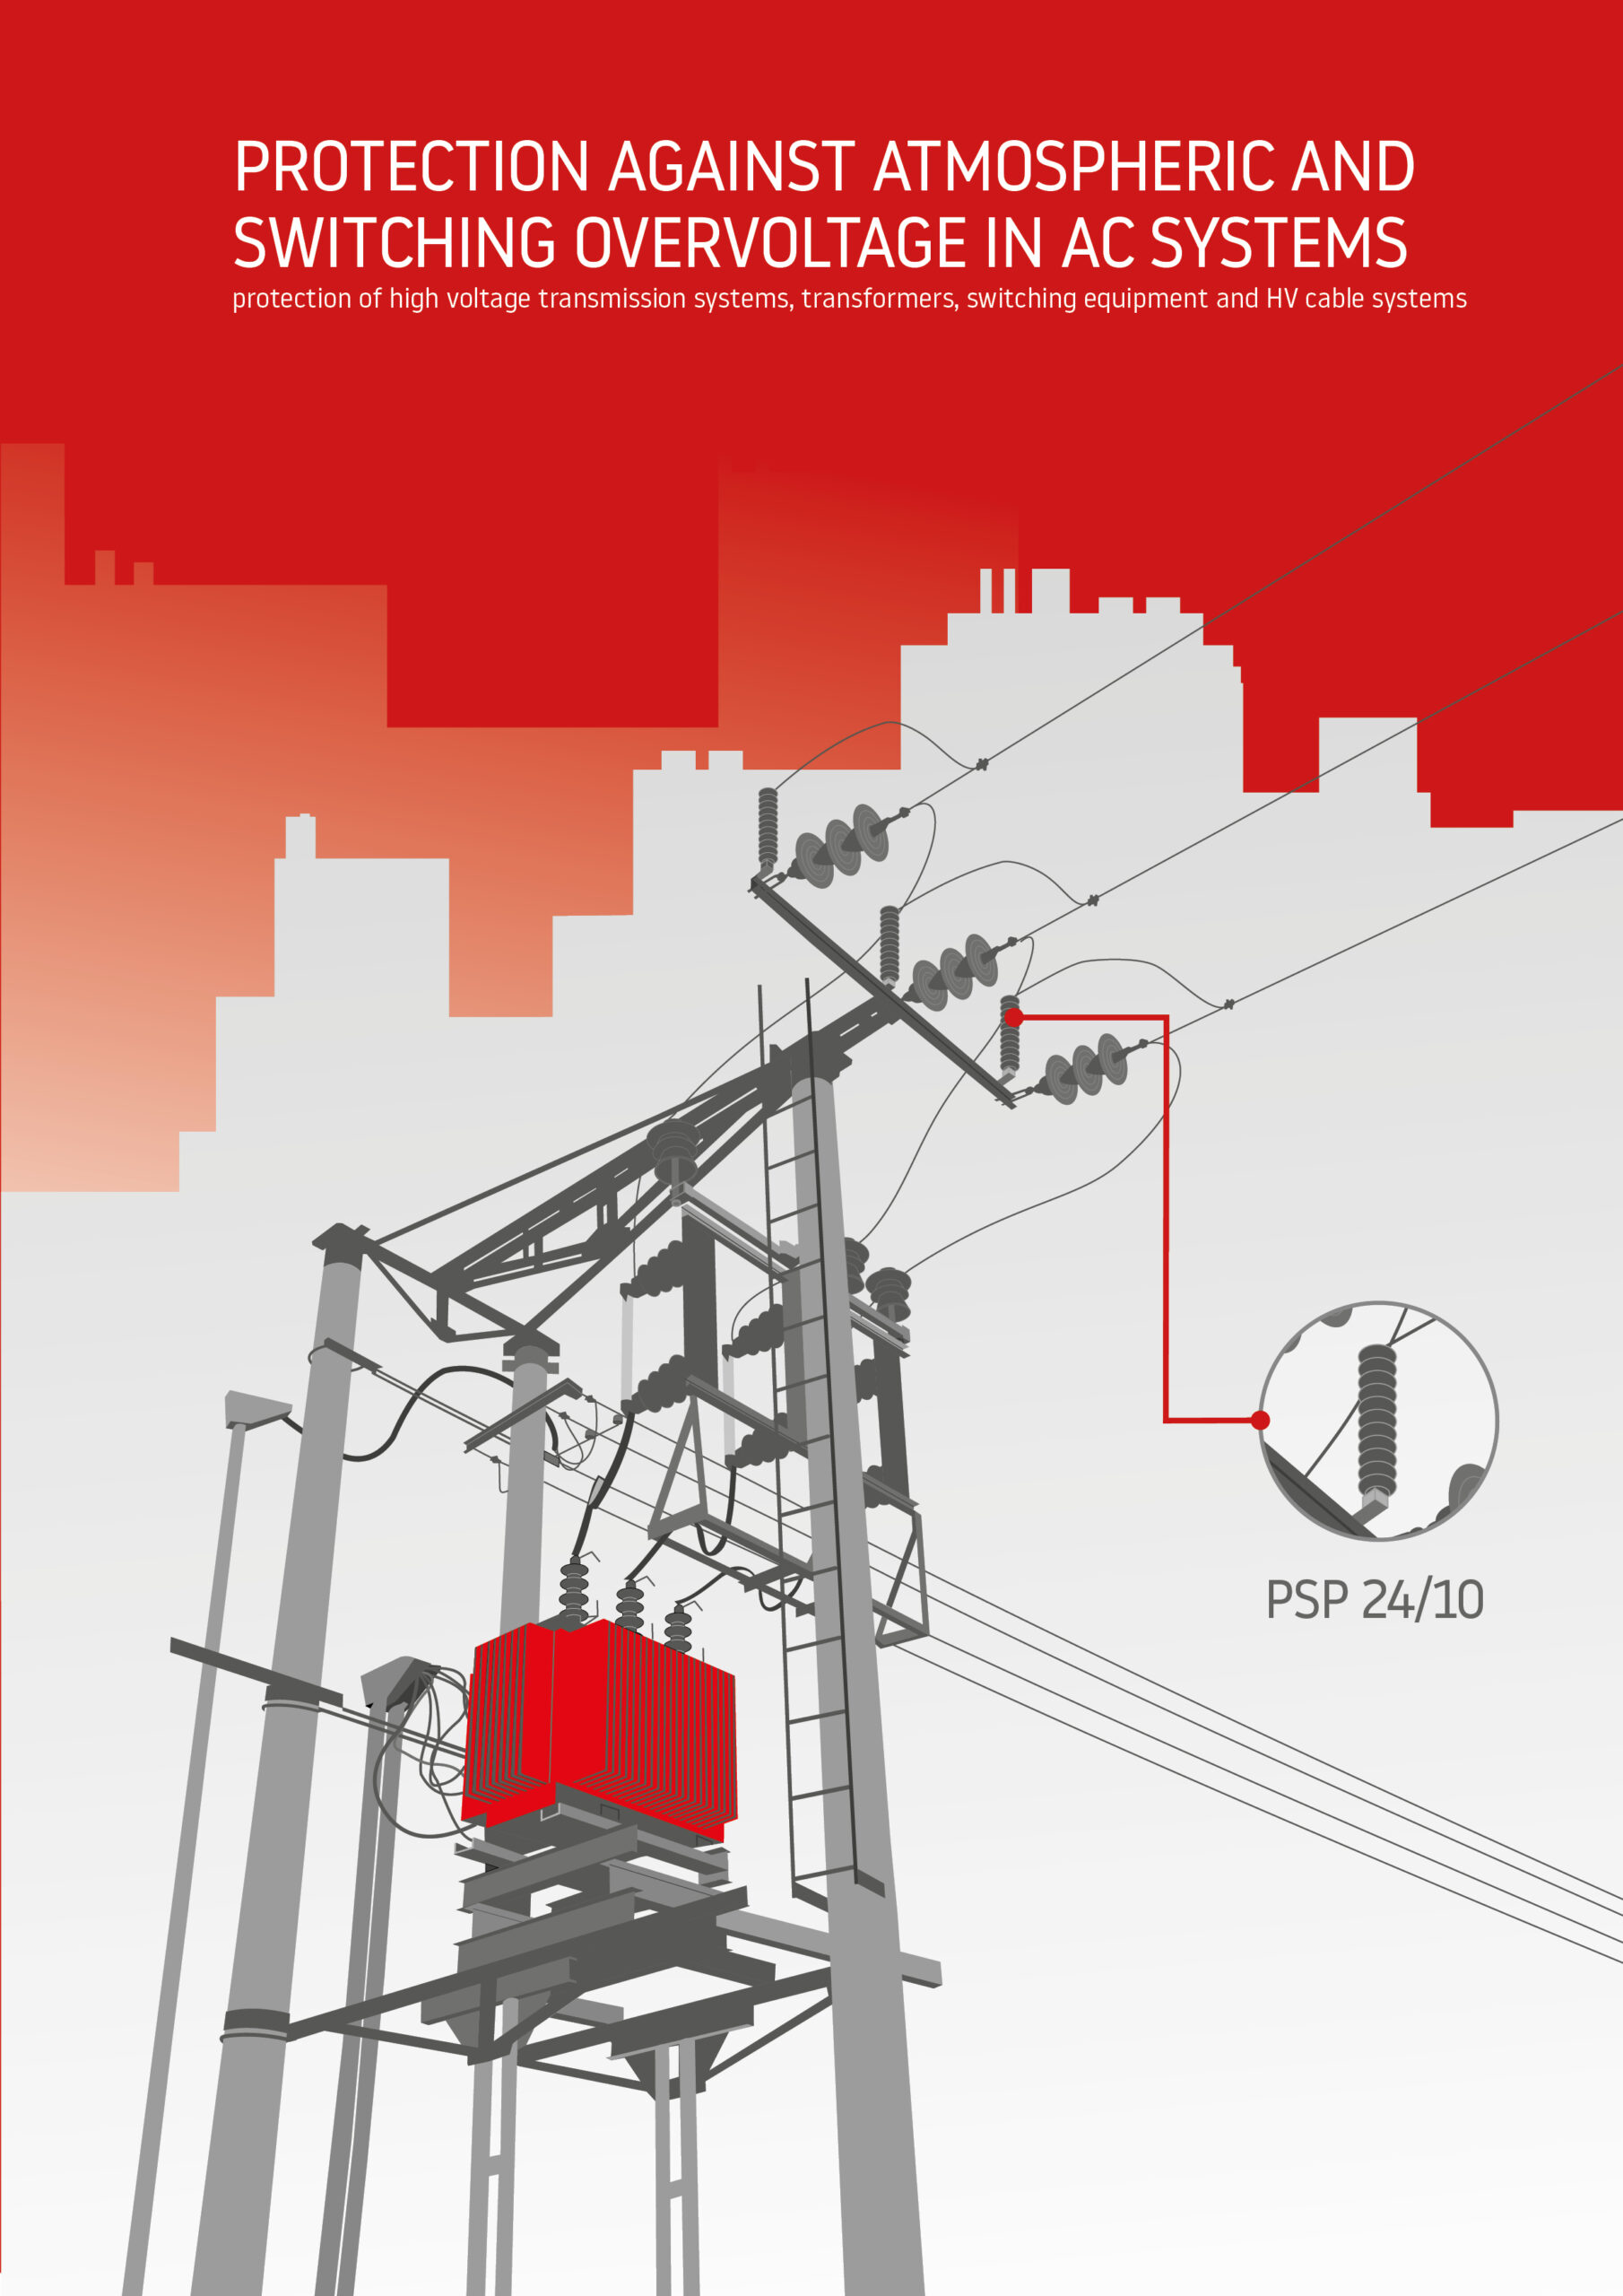 Protection against Atmospheric and Switching Overvoltage in AC Systems